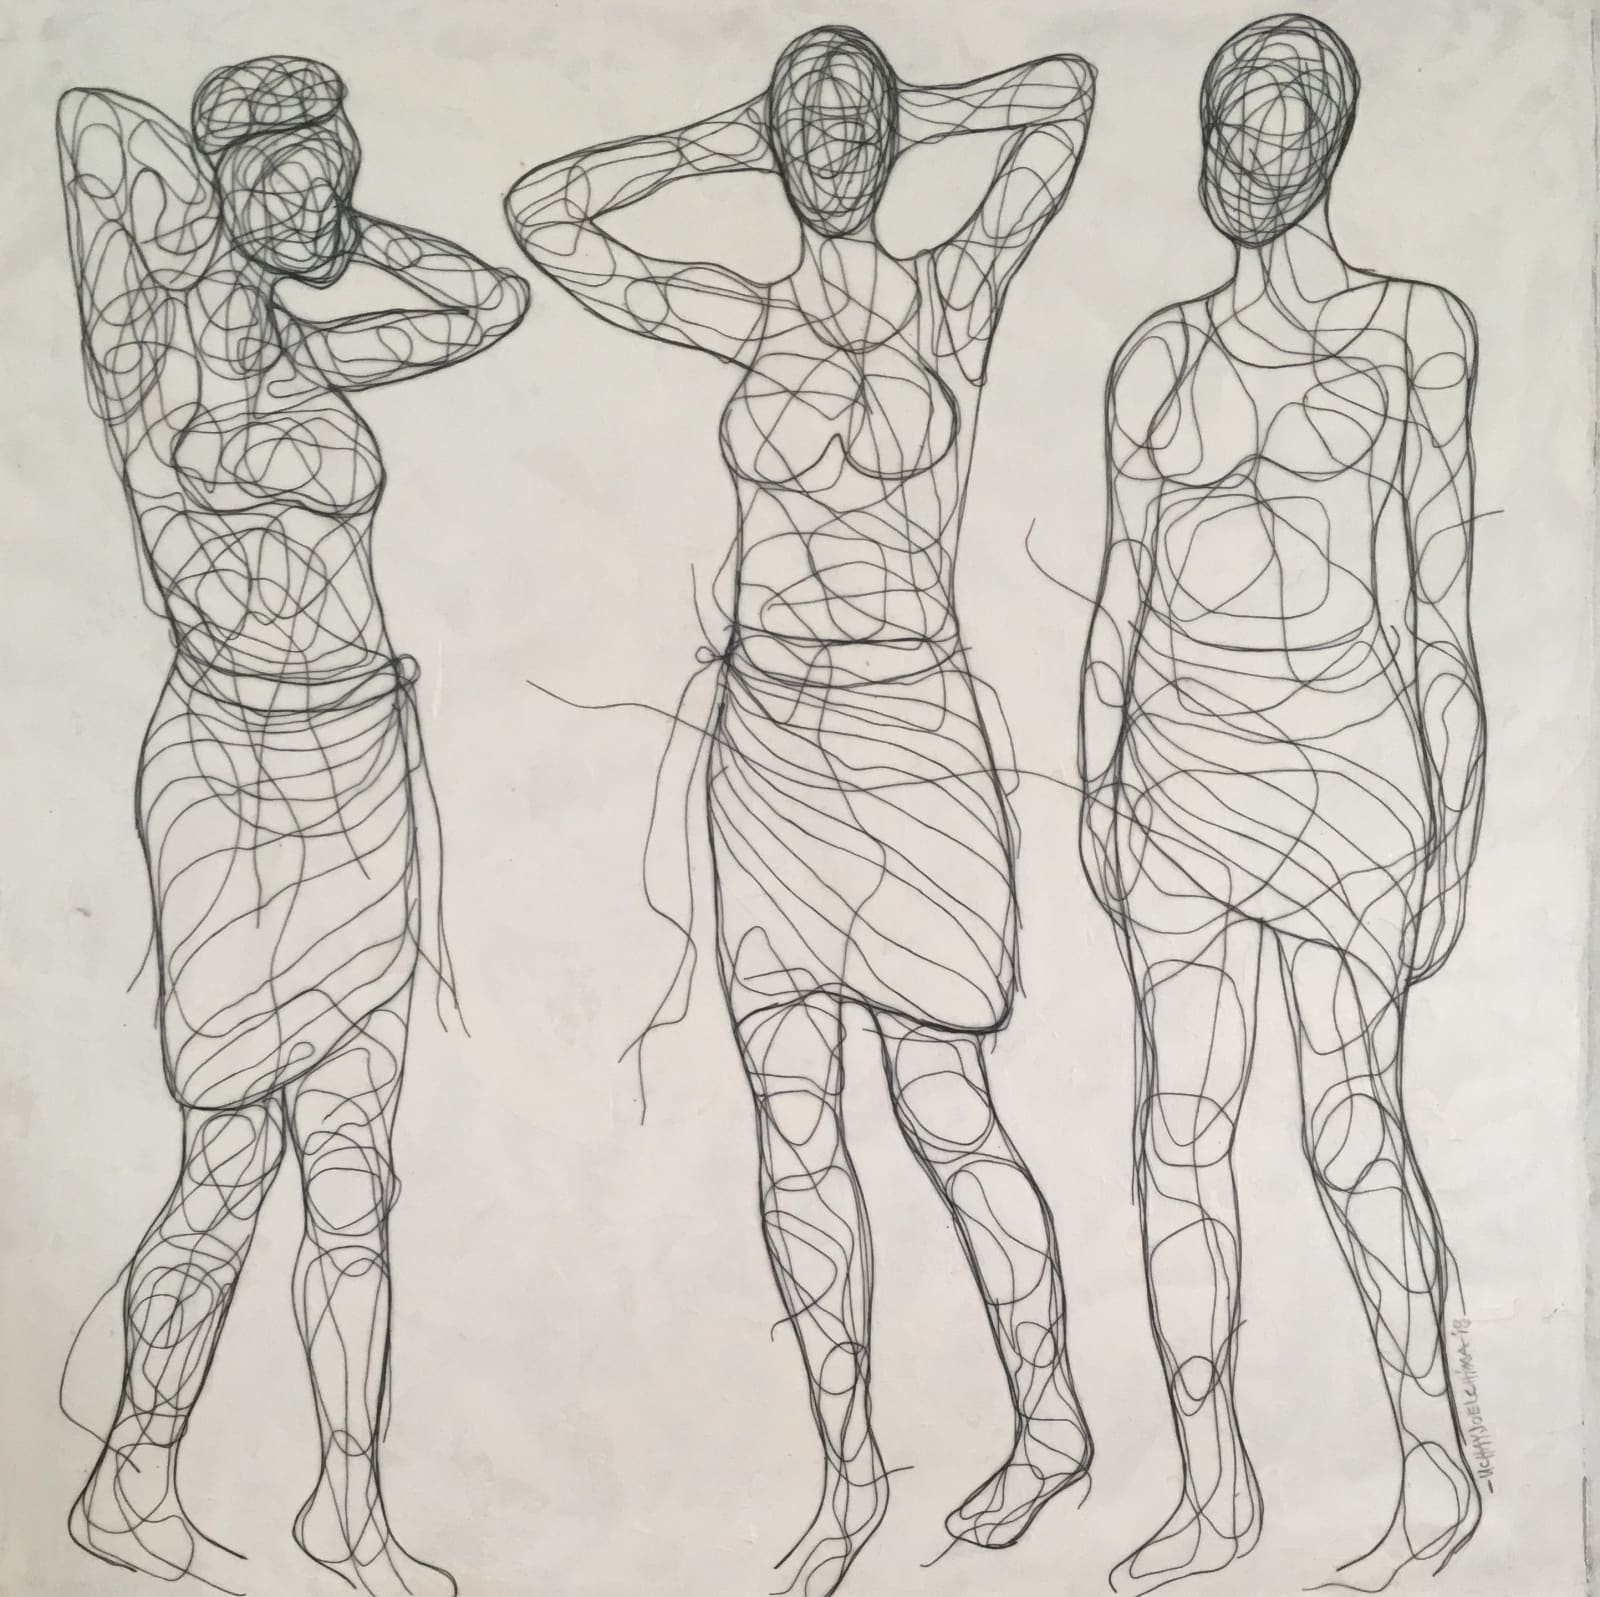 Uchay Chima, Young and Free, 2018